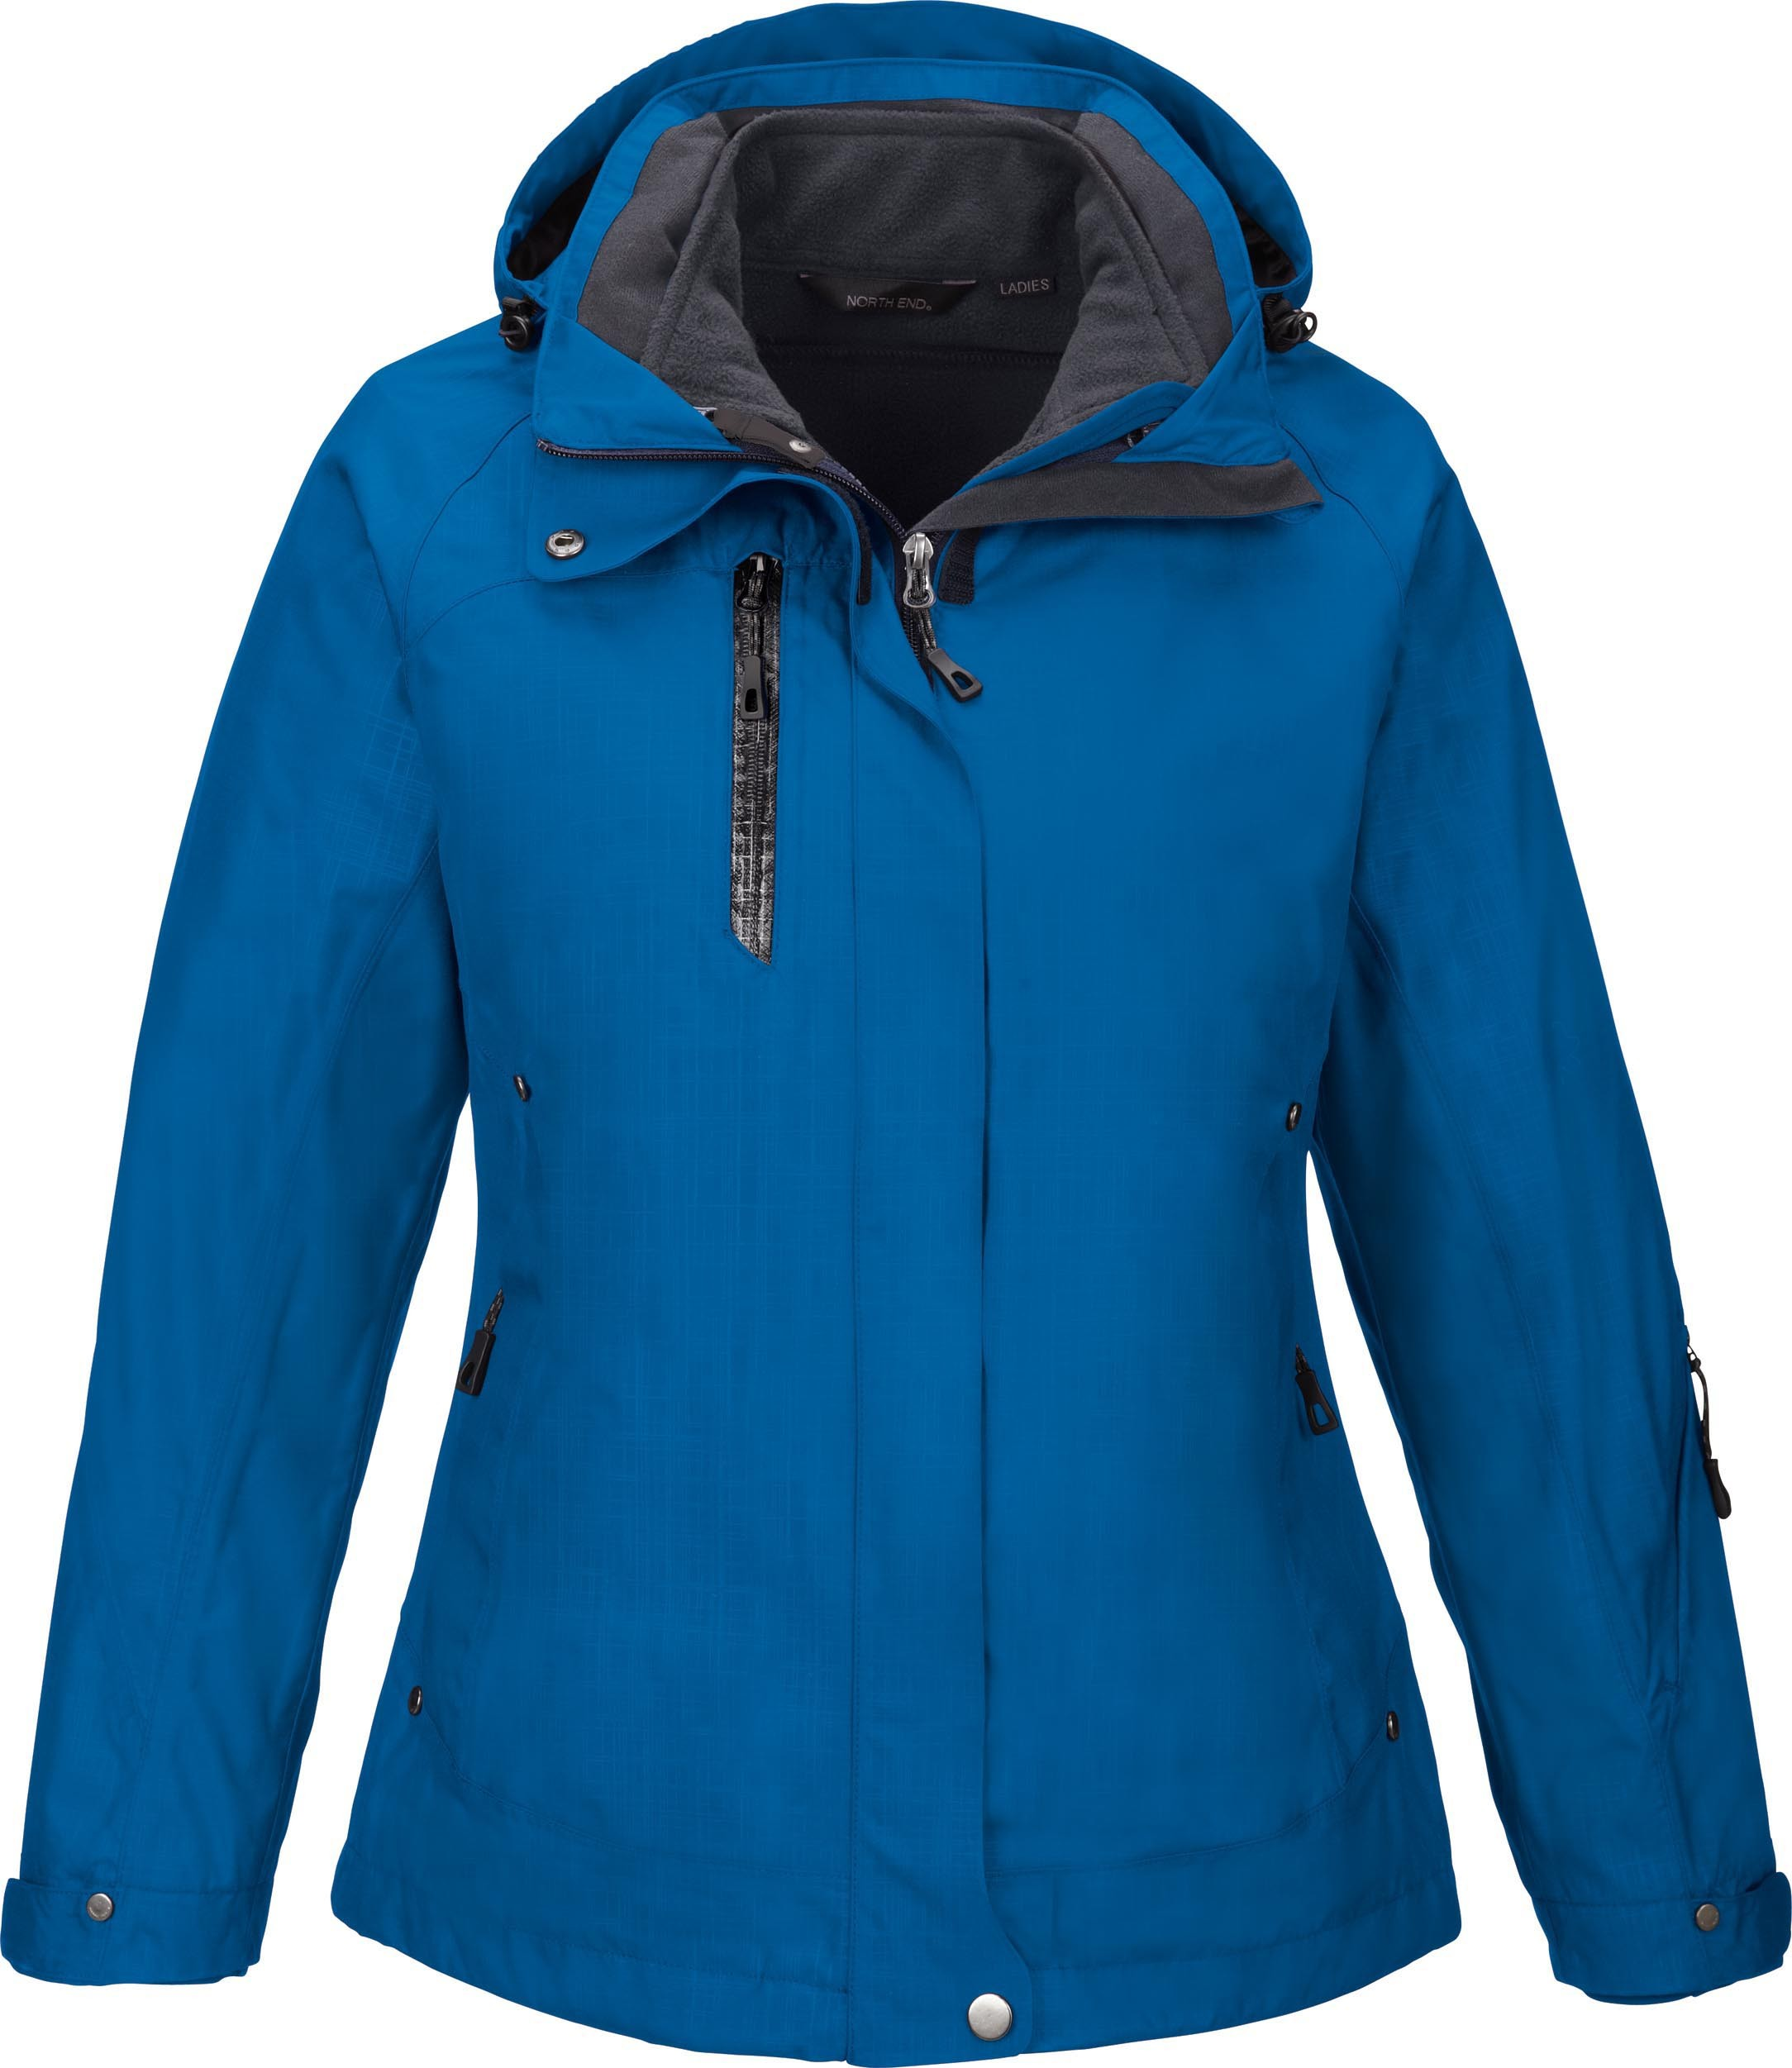 Ash City UTK 2 Warm.Logik 78178 - Caprice Ladies' 3-In-1 Jacket With Soft Shell Liner